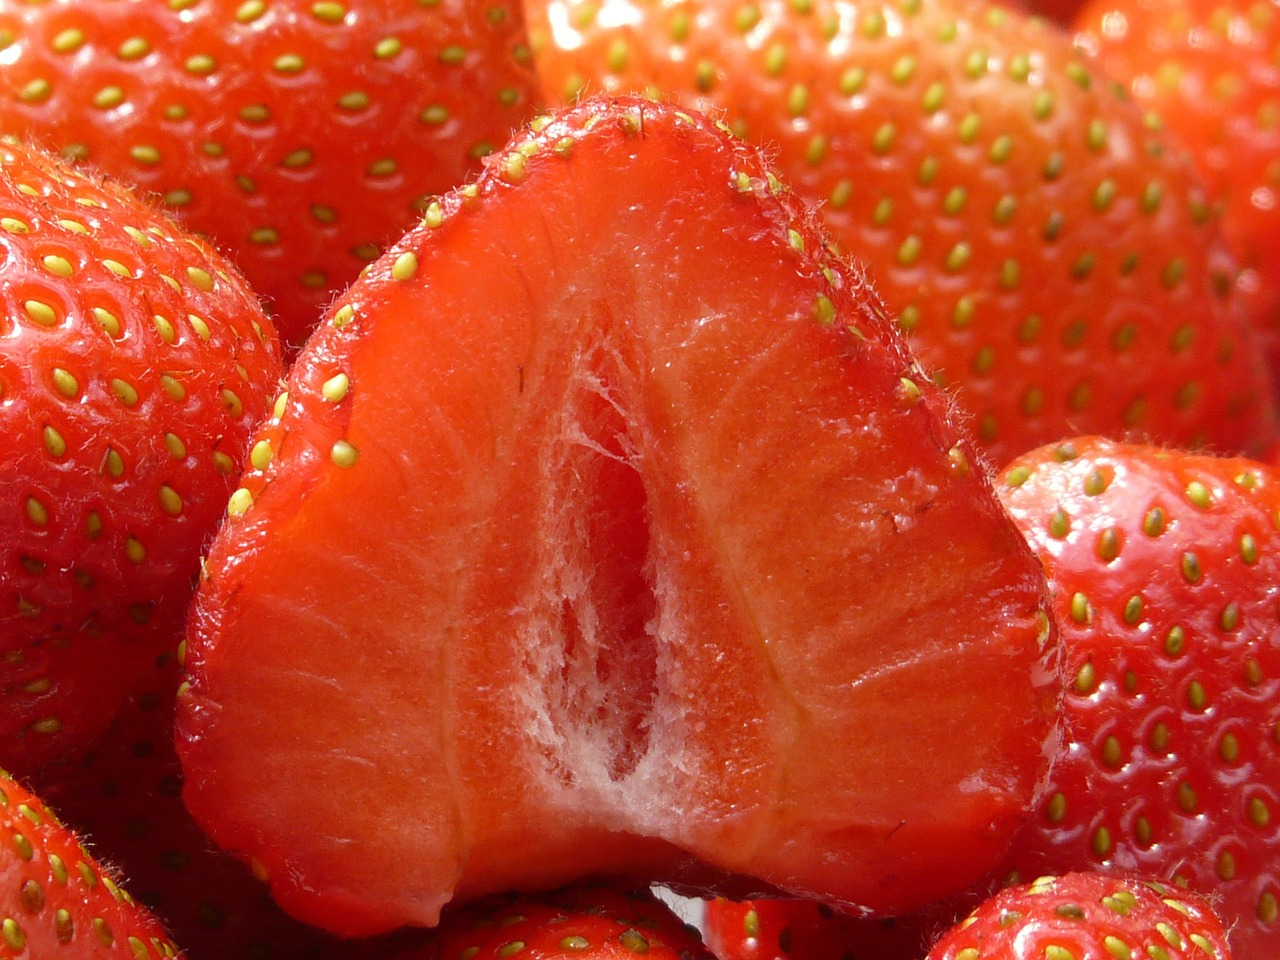 strawberries cut in half fruity free photo